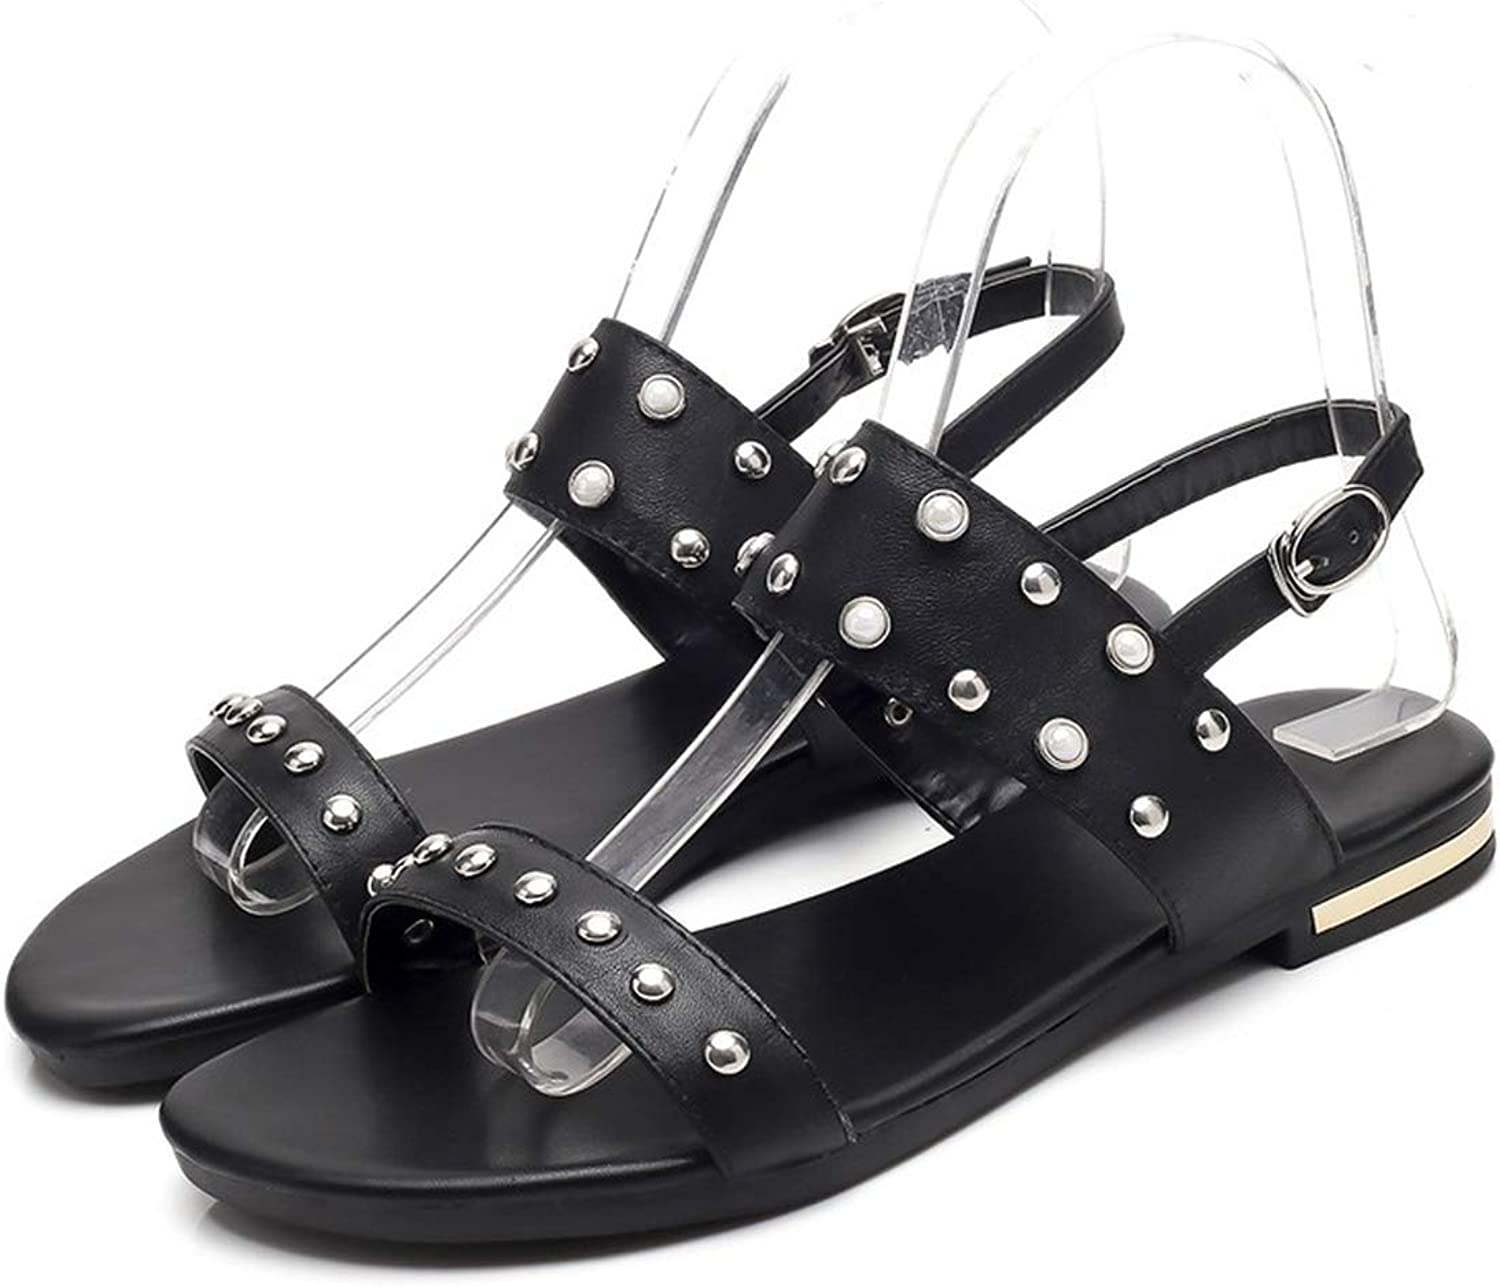 2018 Fashion shoes Woman Plus Size 32-46 Casual Sandals Women Genuine Leather shoes Buckle Flat with Rivet